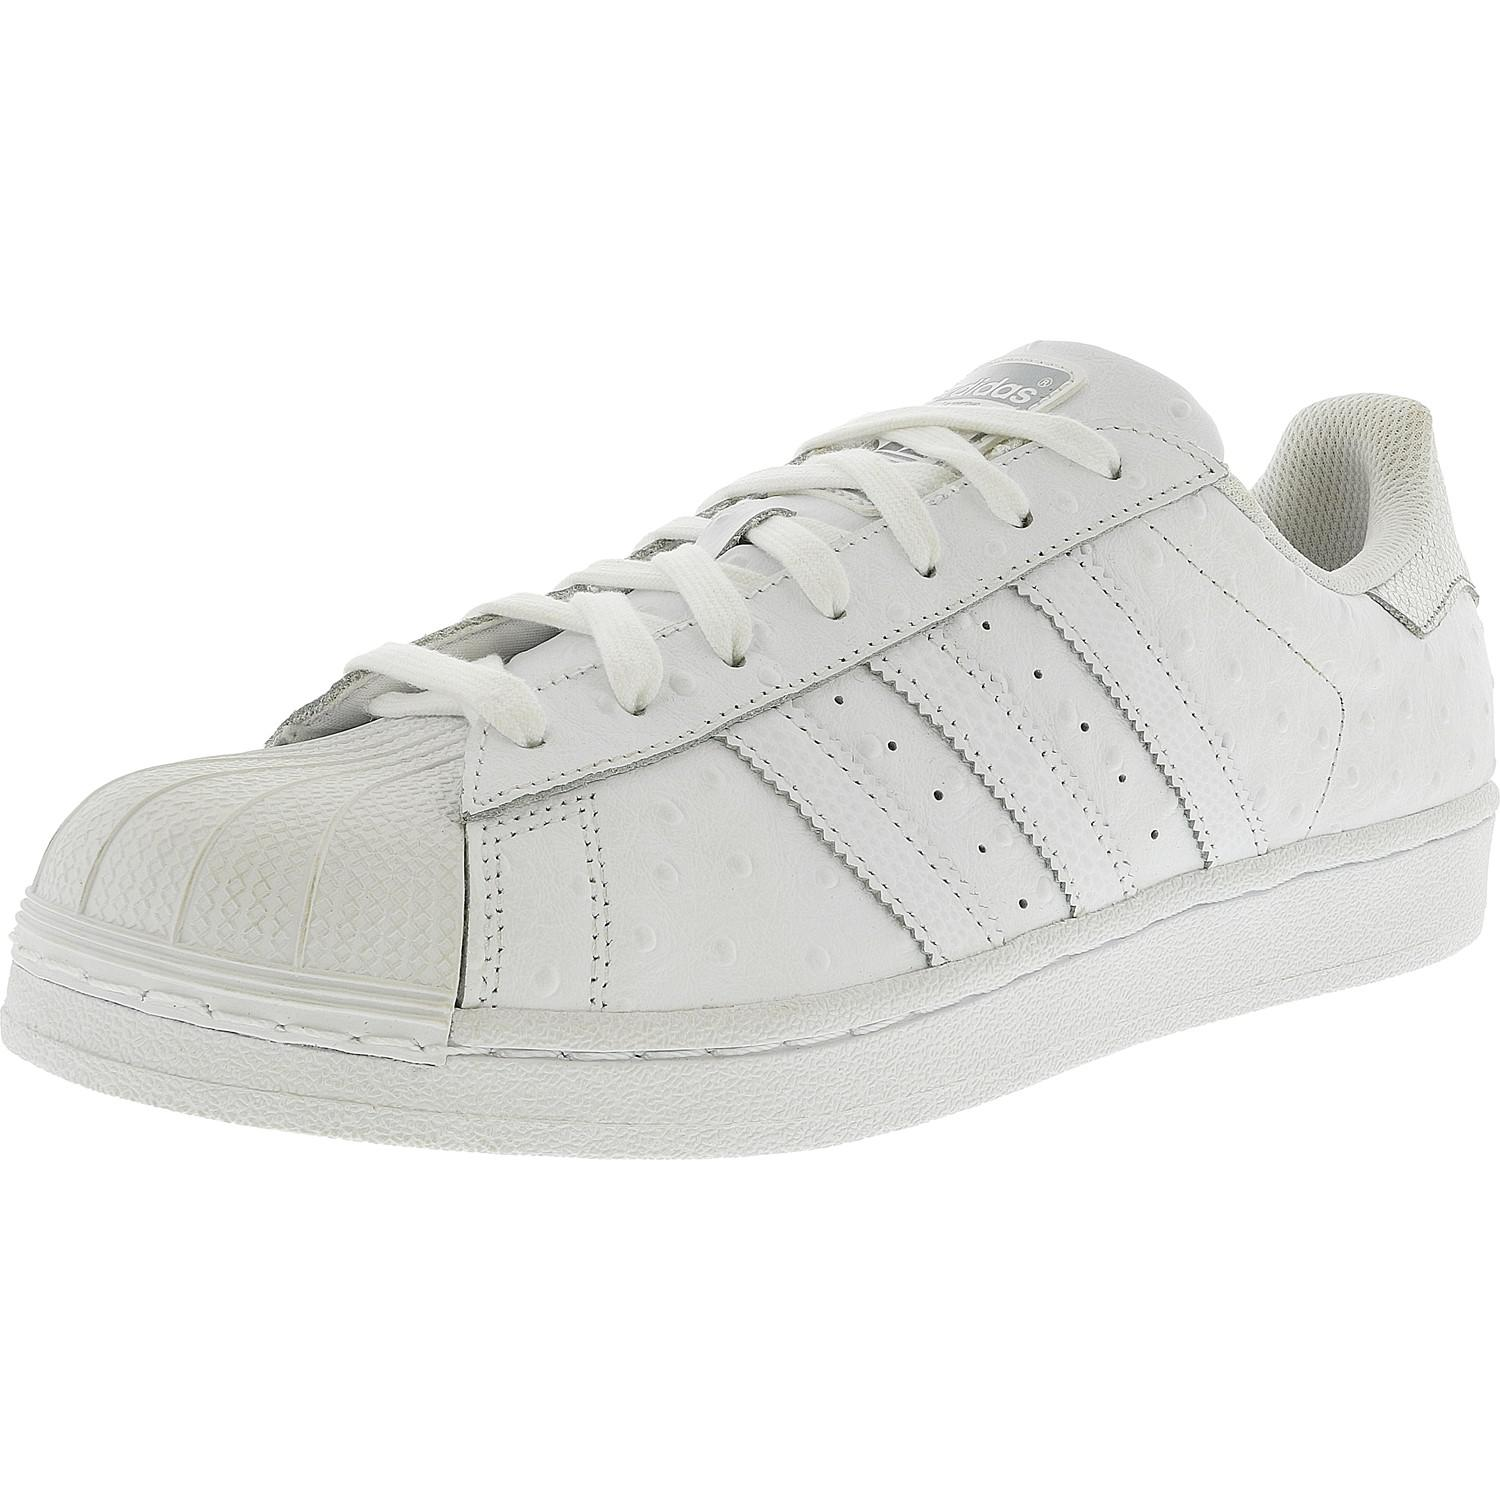 Lyst Adidas Superstar Ftw White Silver Metallic Ankle